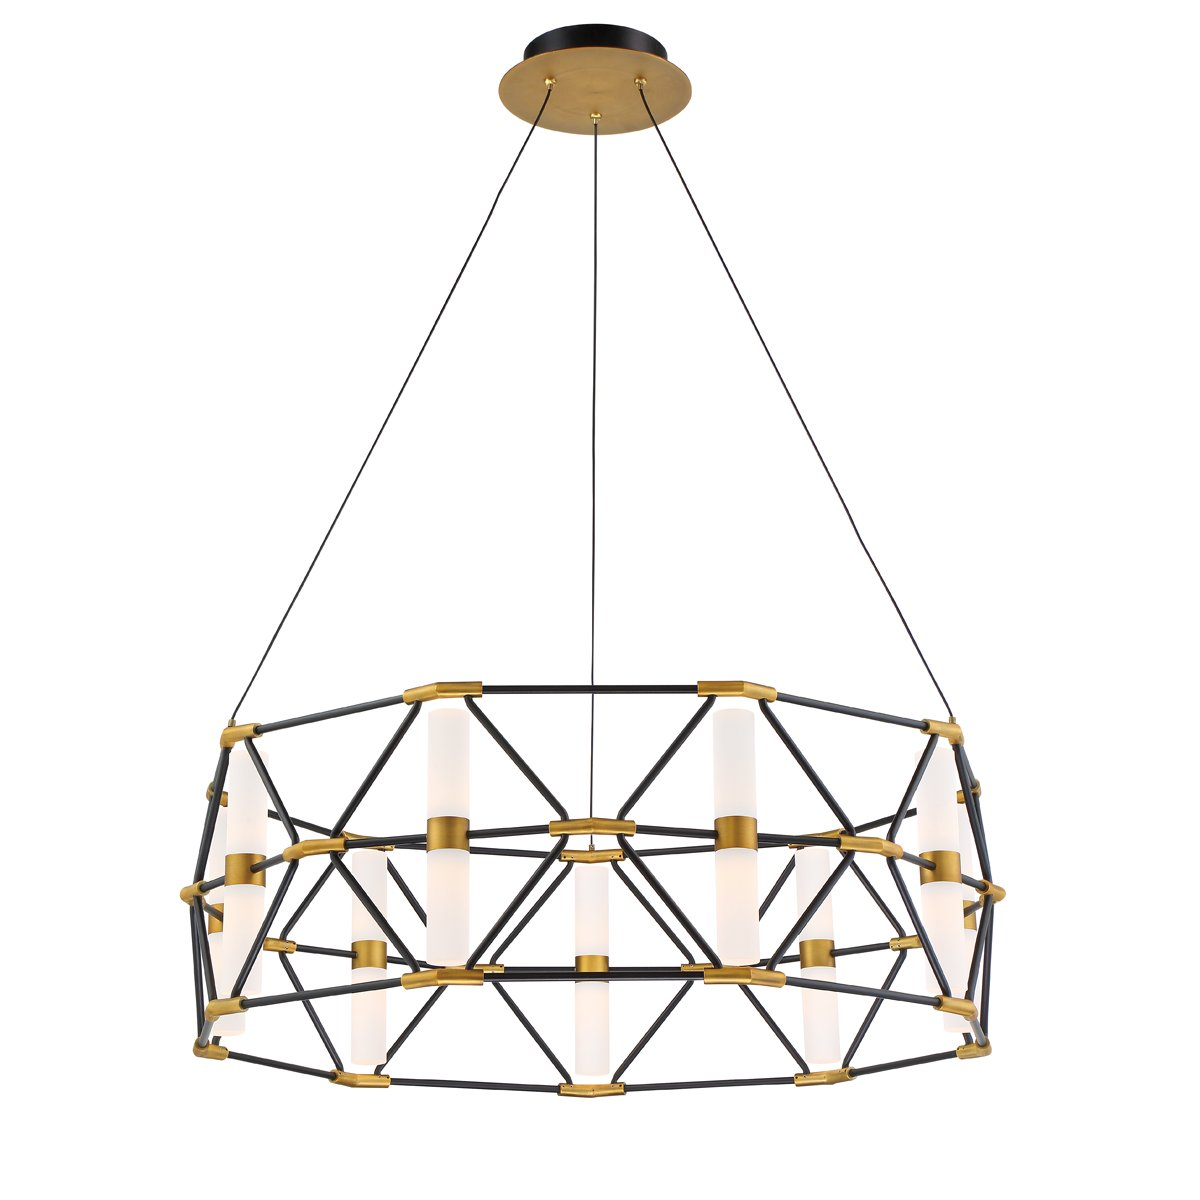 Modern Forms new Labyrinth chandelier in brass and gold